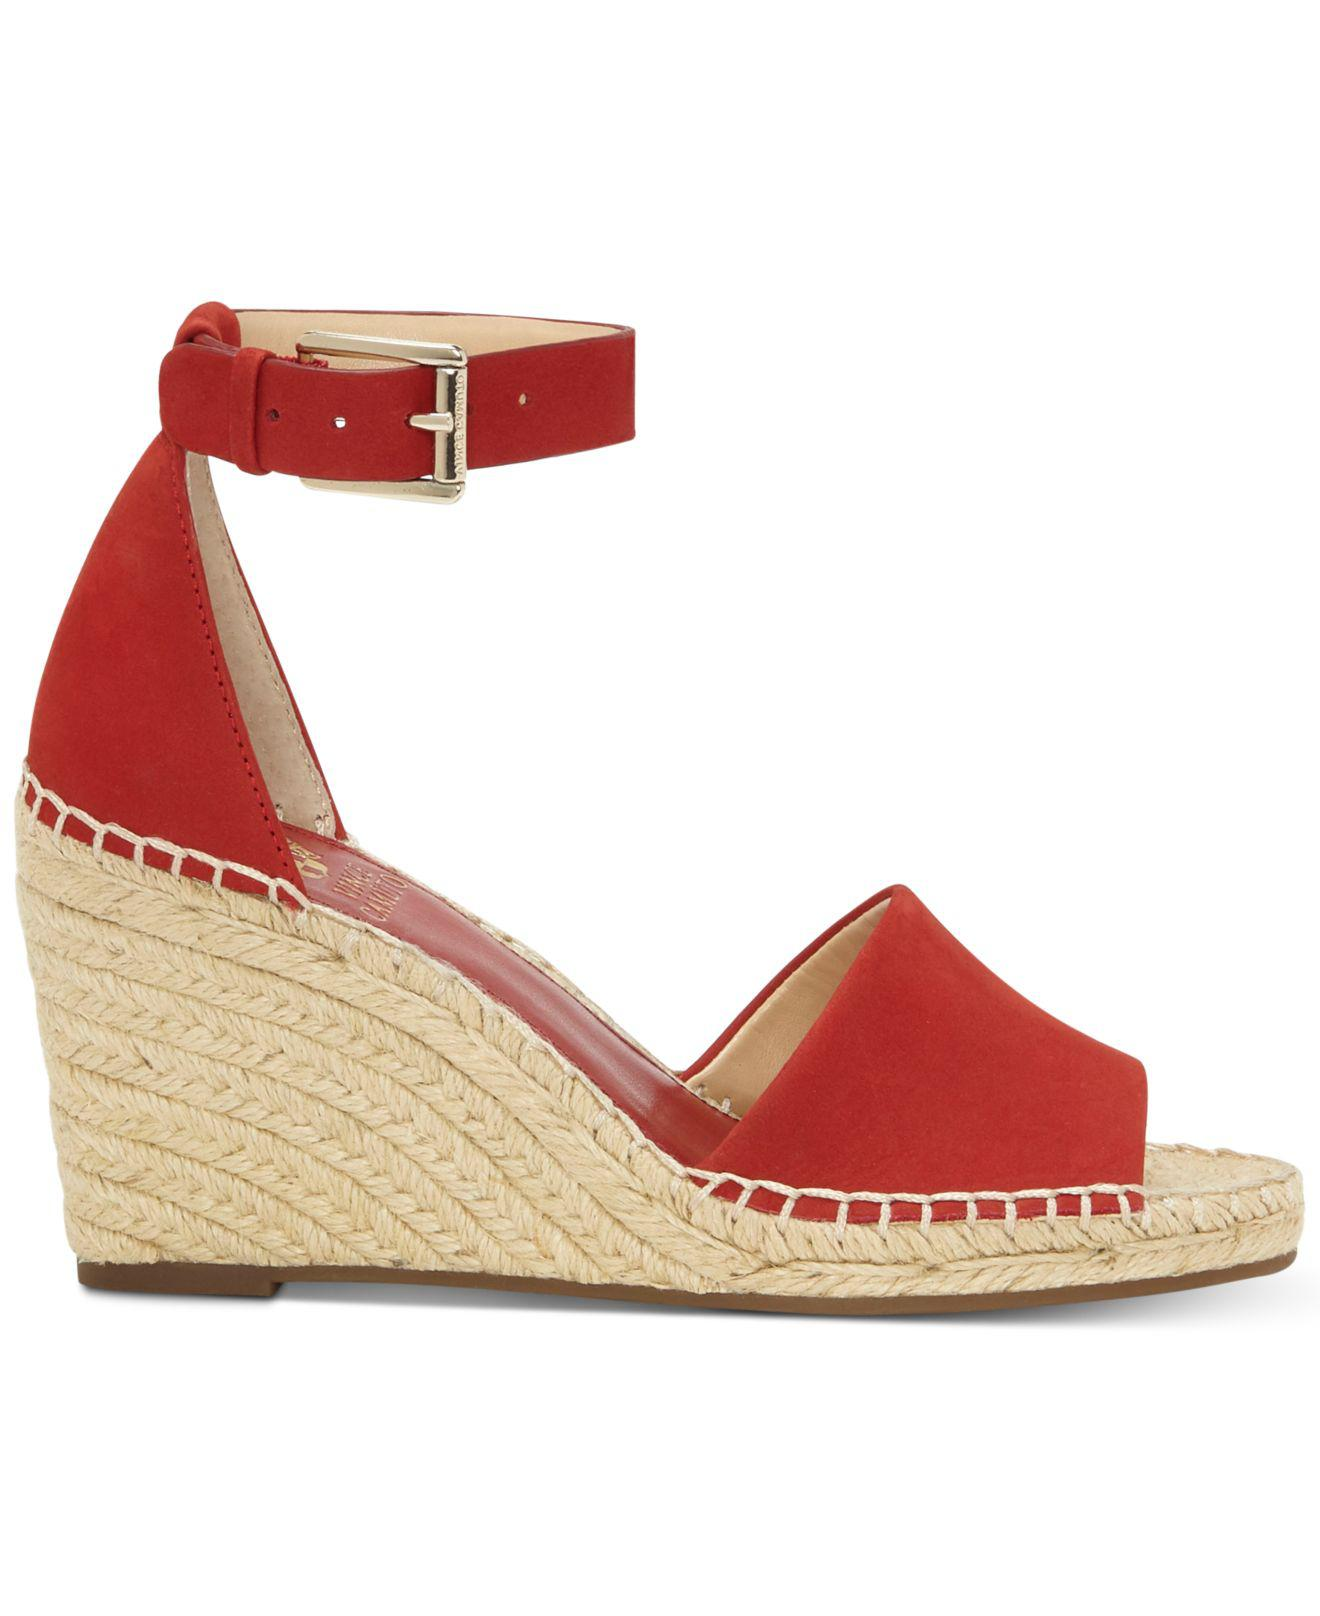 13b6834ebf9 Lyst - Vince Camuto Leera Espadrille Wedge Sandals in Red - Save 46%